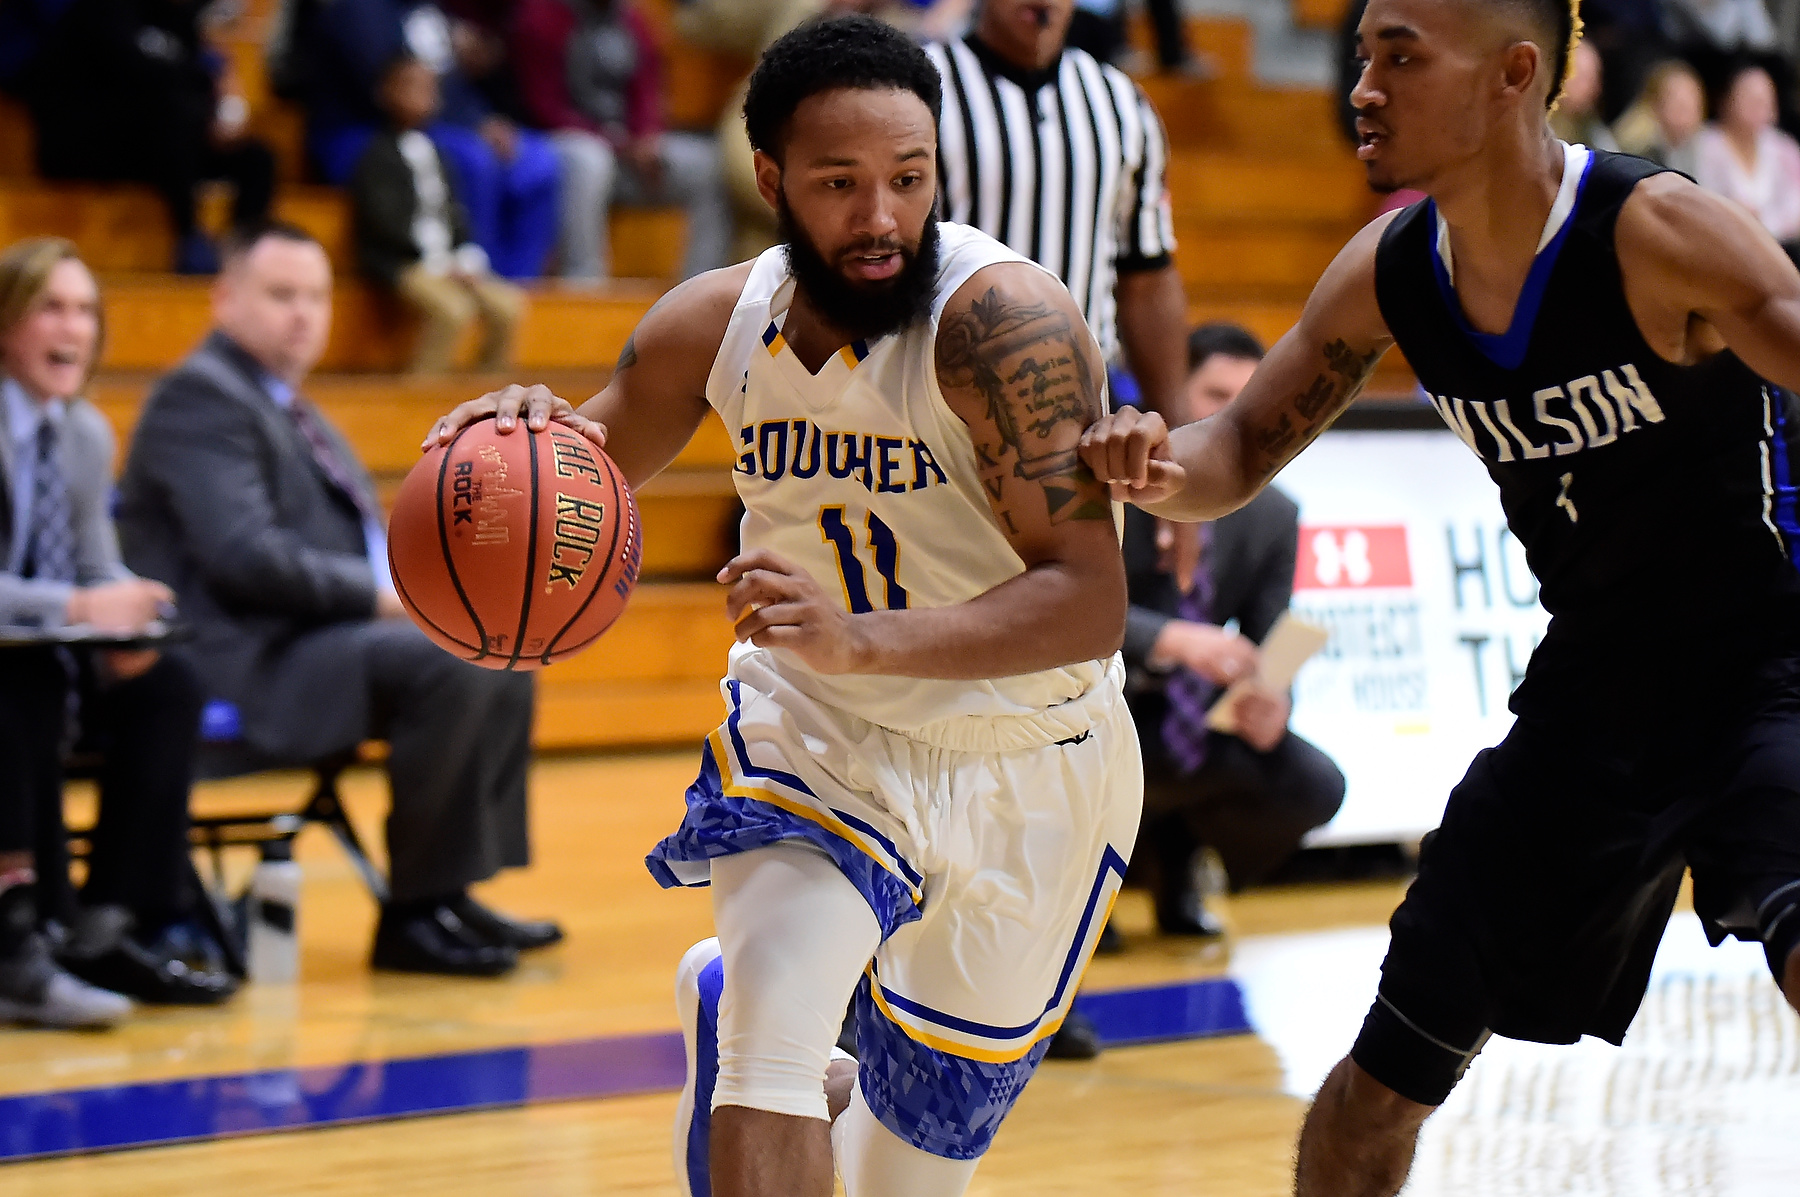 Men's Basketball Falls at Home to Salisbury